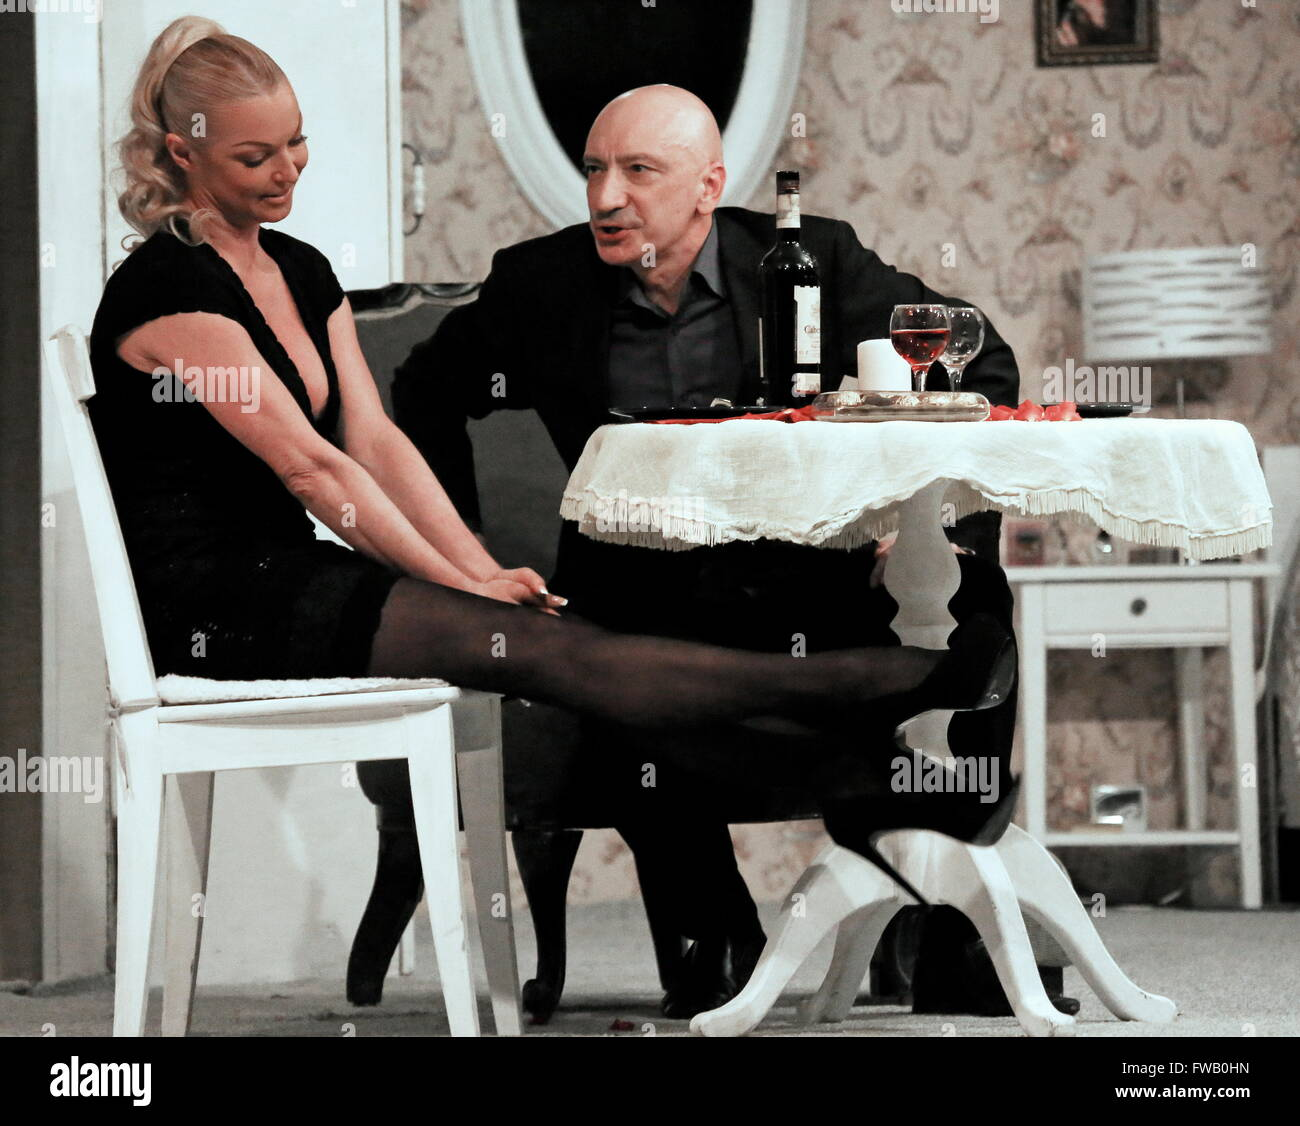 Anastasia Volochkova forced her daughter to sit on the splits 03/03/2018 42